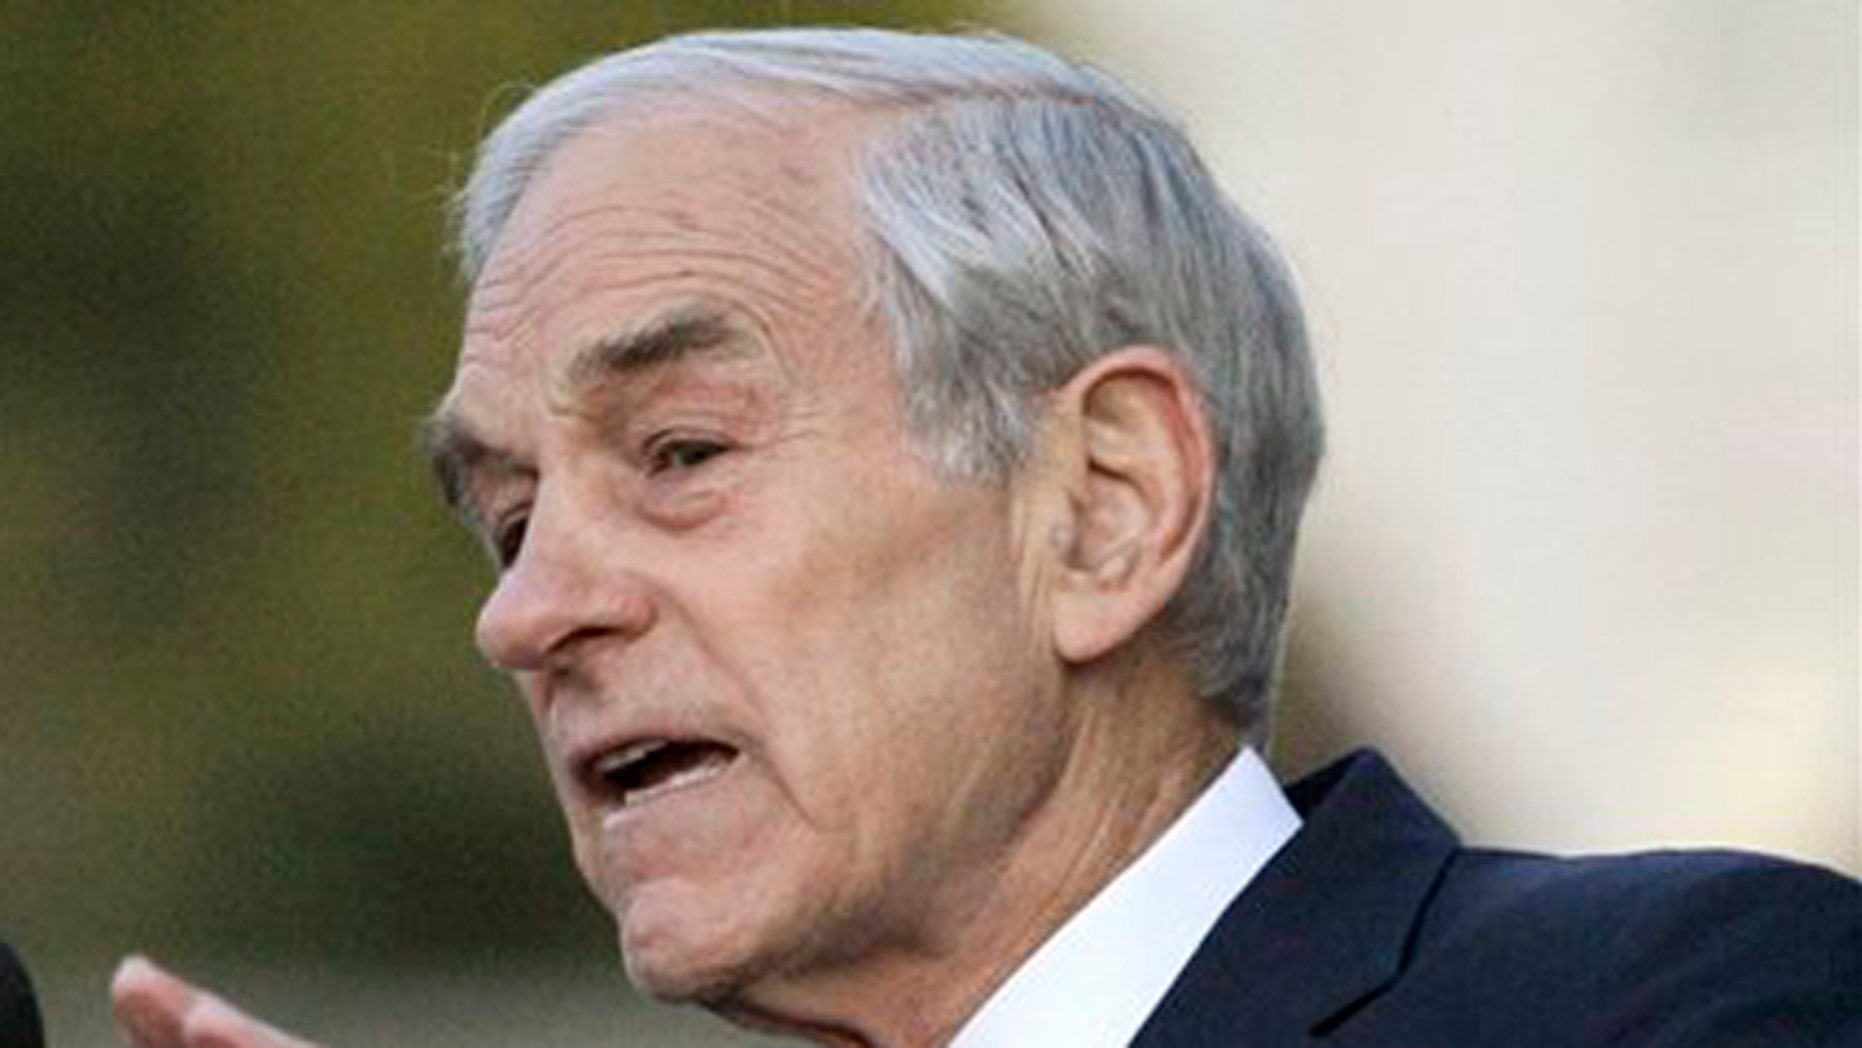 FILE: April 5, 2012: Republican presidential candidate Rep. Ron Paul, R-Texas speaks at the University of California at Berkeley, Calif.